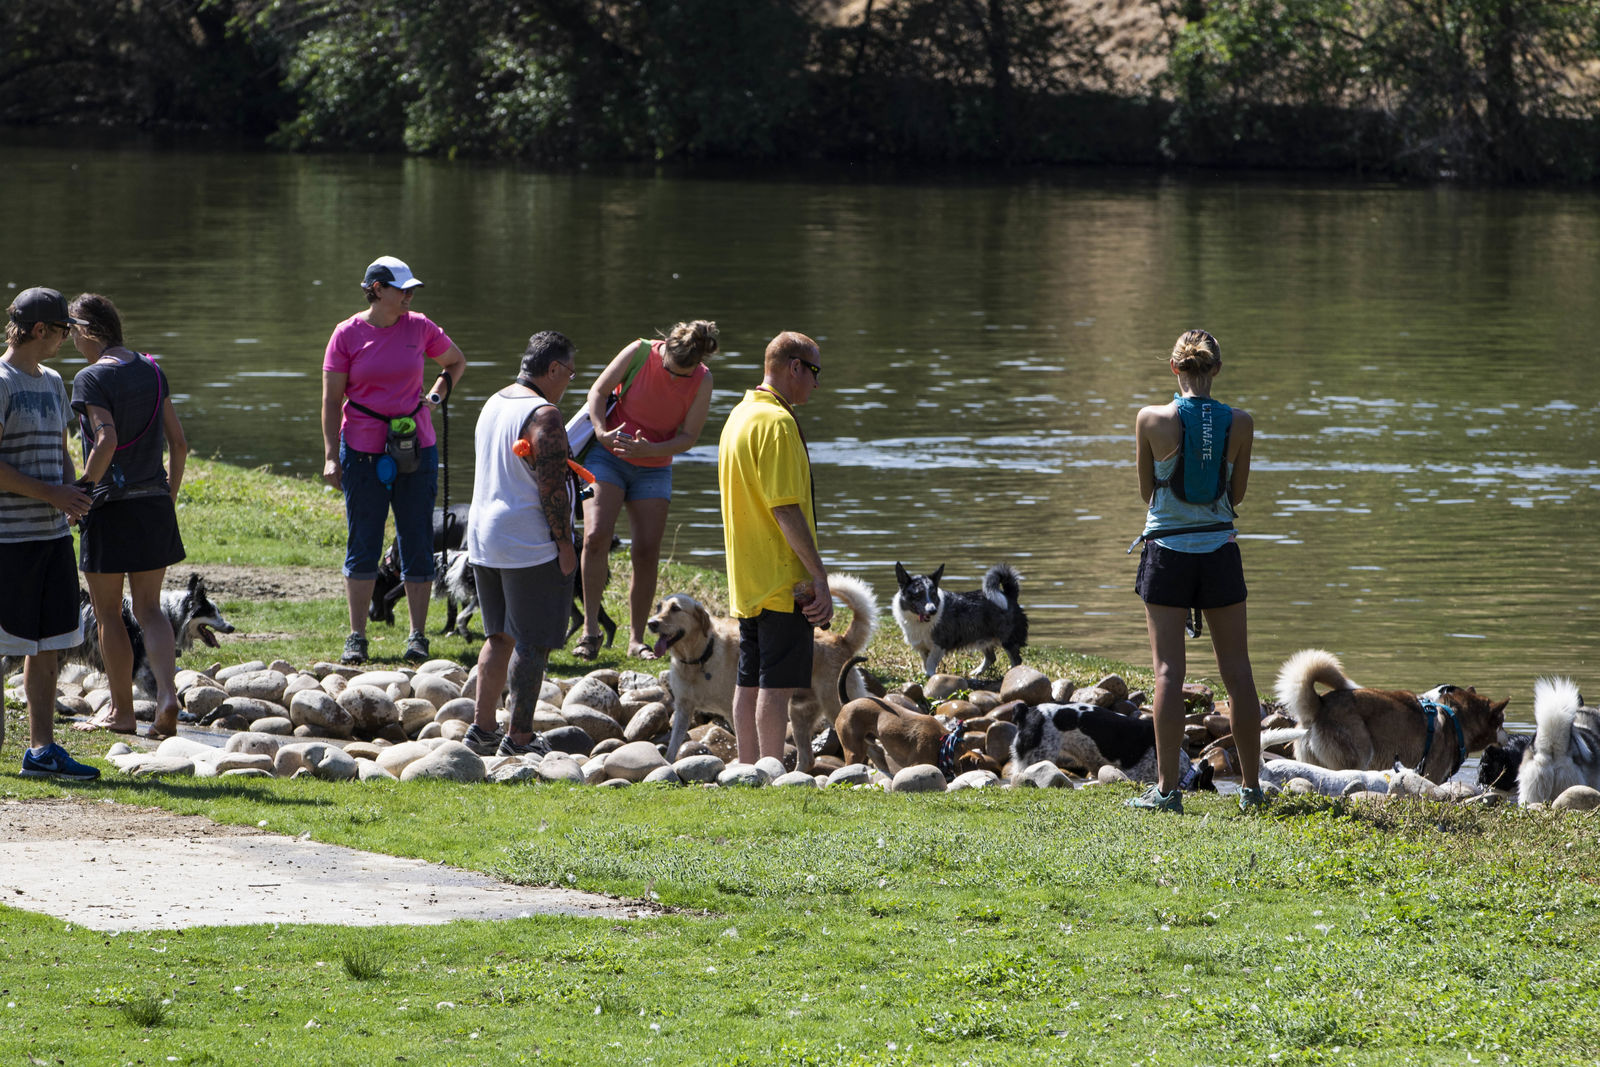 Together Treasure Valley Dog Island at Ann Morrison Park in Boise has opened! An off-leash area, five acres in size has opened for dogs owners to let their puppies run free. Surrounded by water, the park features several swim areas, picnic shelters, and drinking fountains. With all the dogs in the area, the hope is ducks and geese will find another area to leave their droppings as well. (Photos by Axel Quartarone){ }